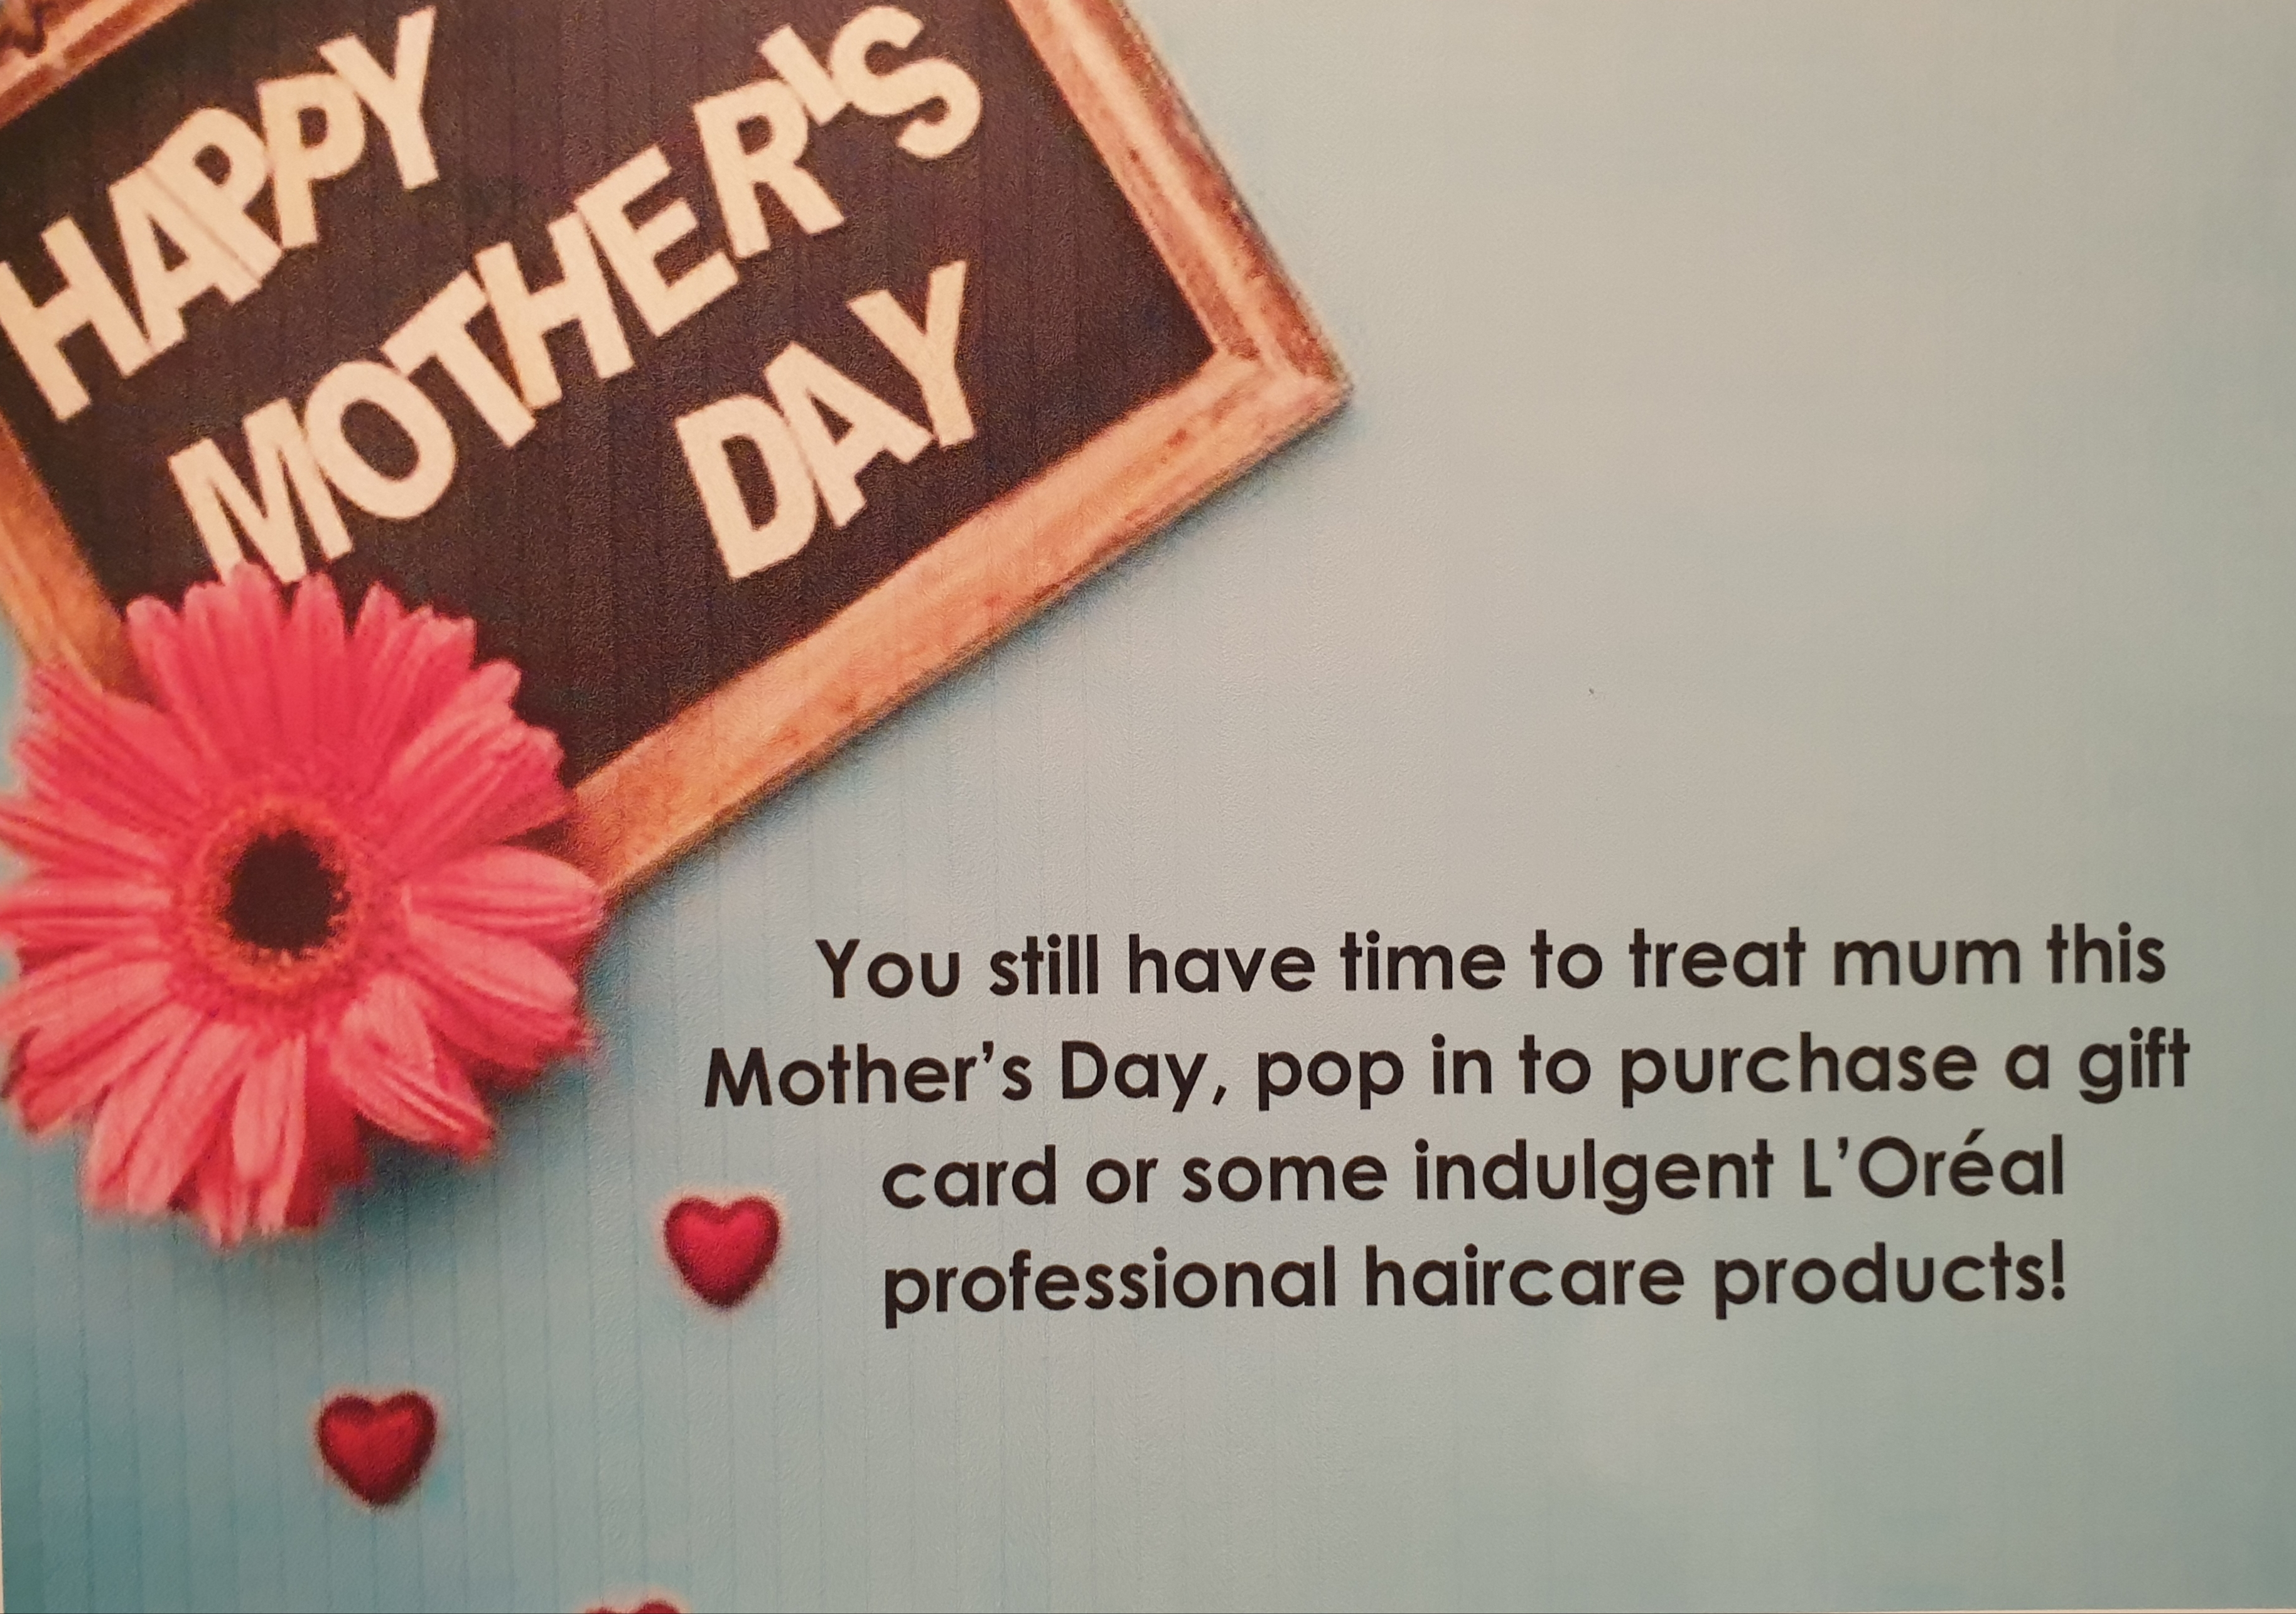 Don't forget Mothers Day!